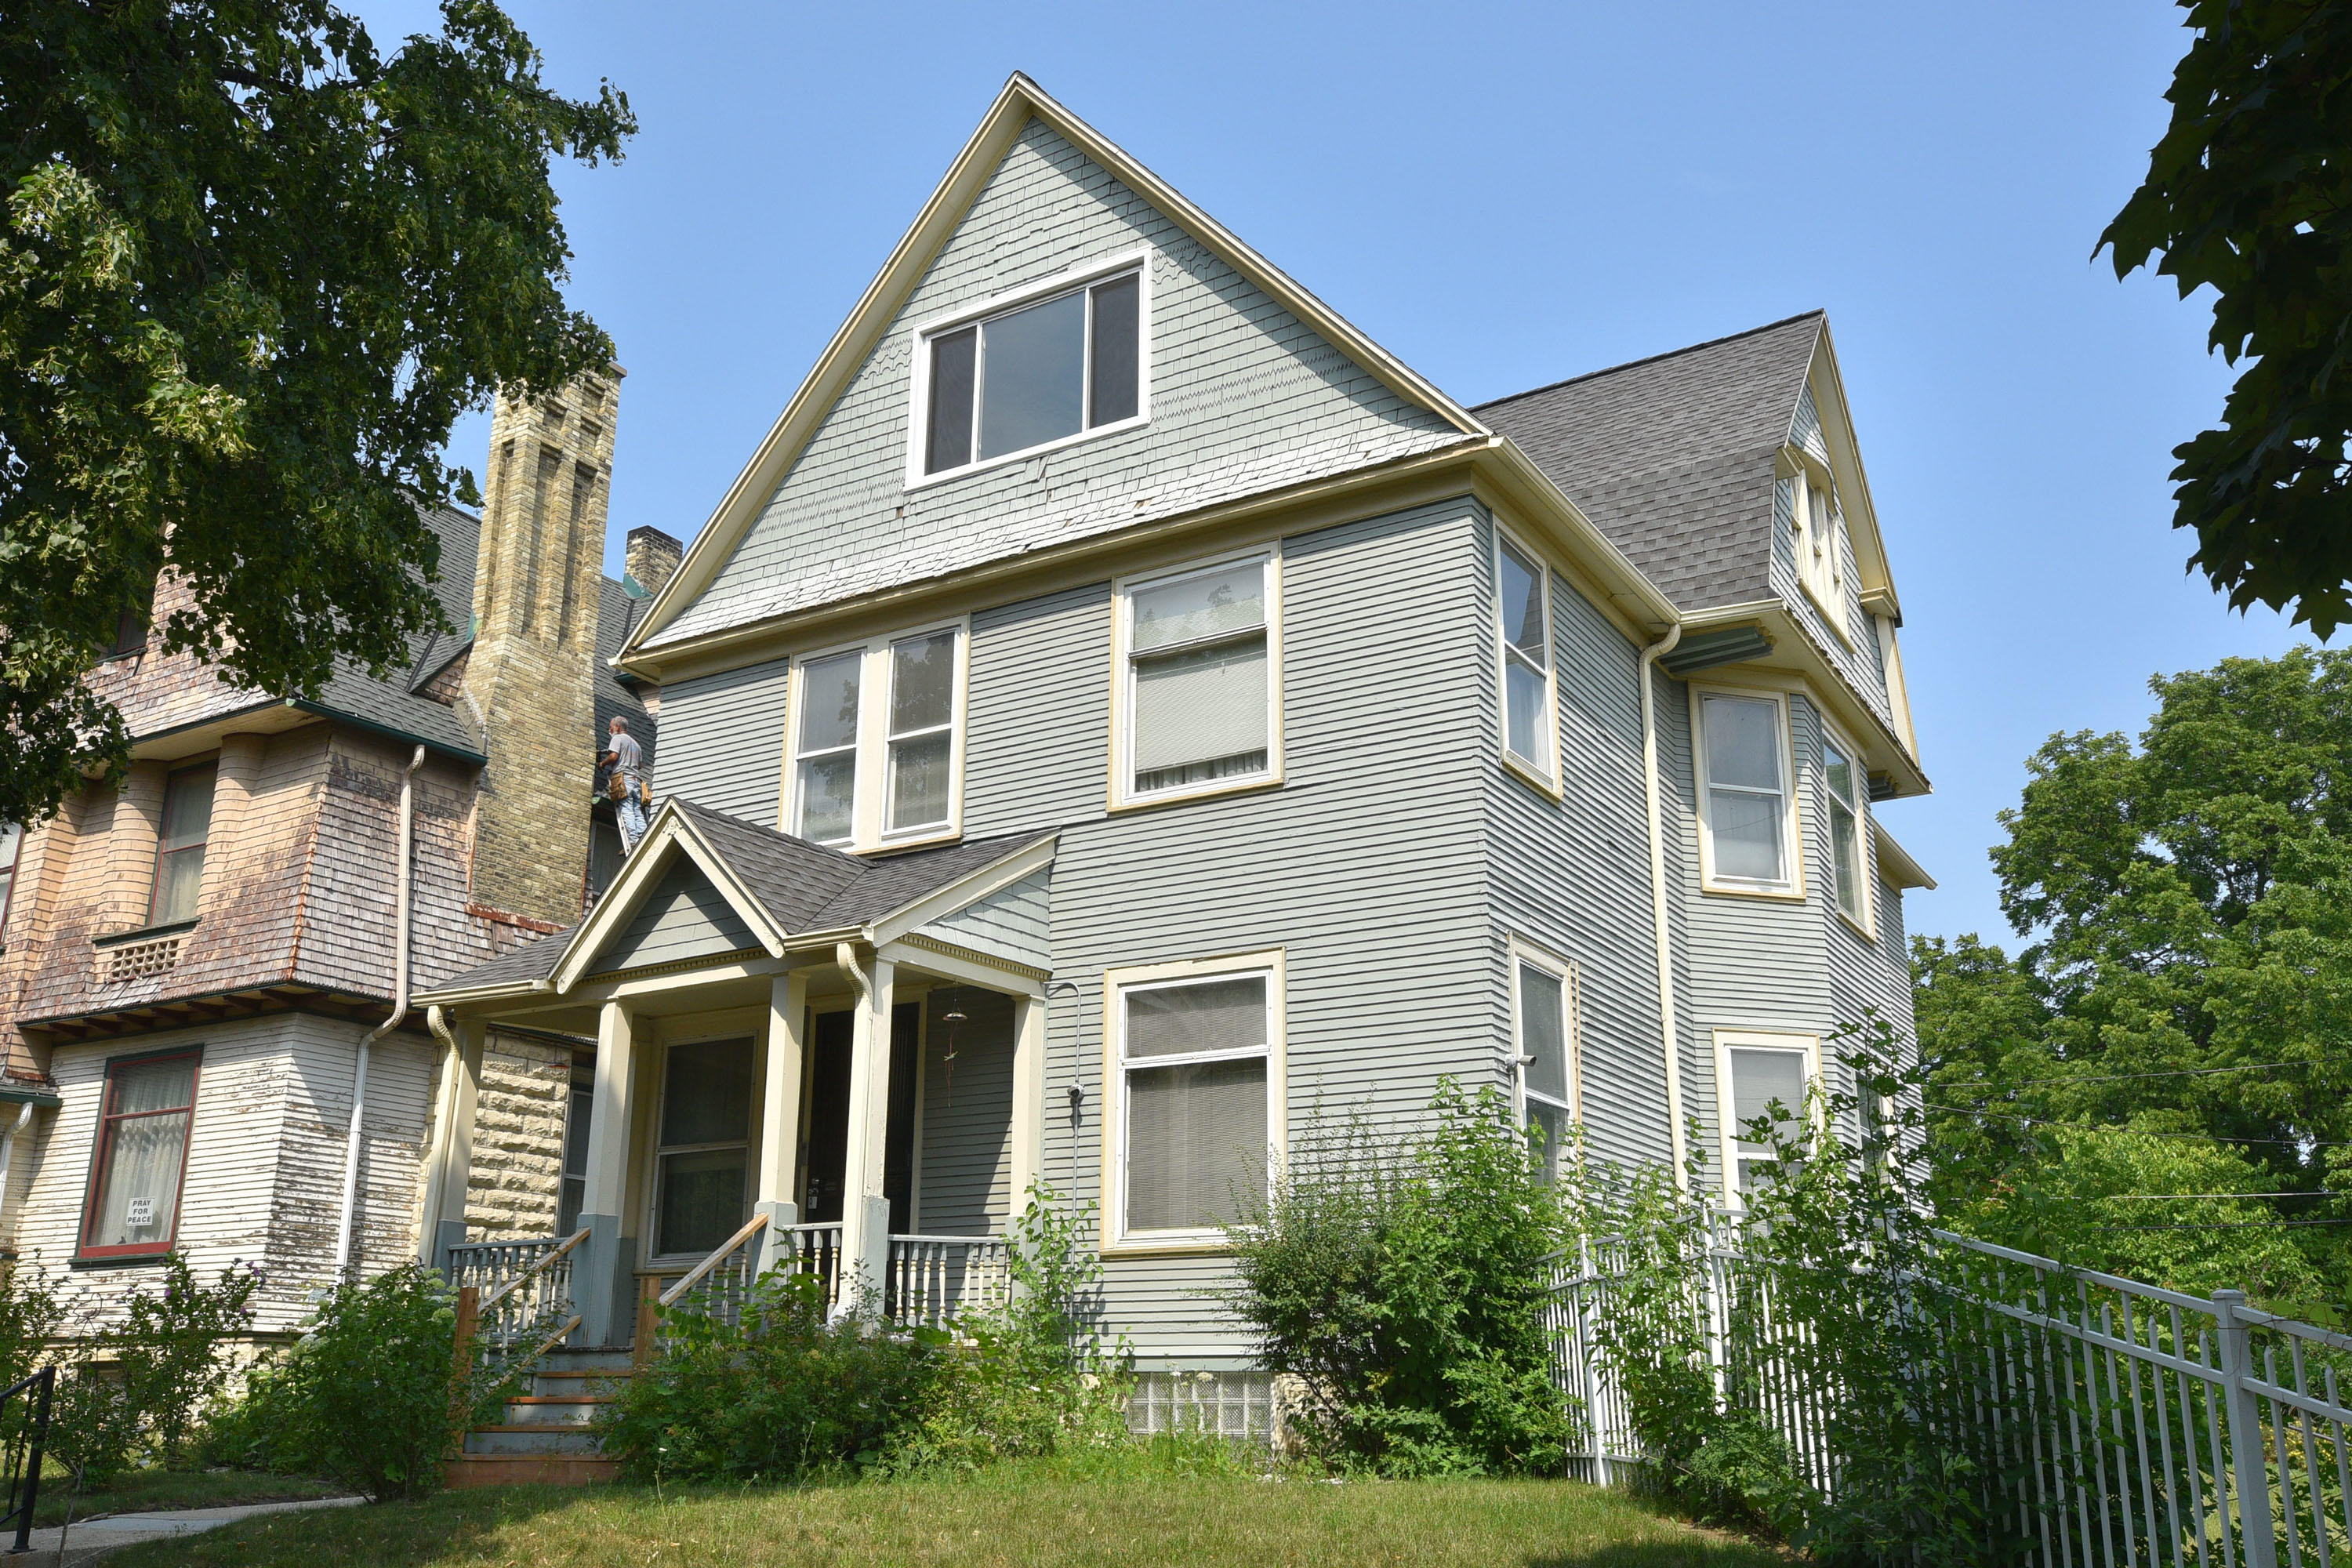 930 31ST ST, Milwaukee, Wisconsin 53208, 3 Bedrooms Bedrooms, 10 Rooms Rooms,4 BathroomsBathrooms,Single-Family,For Sale,31ST ST,1755561